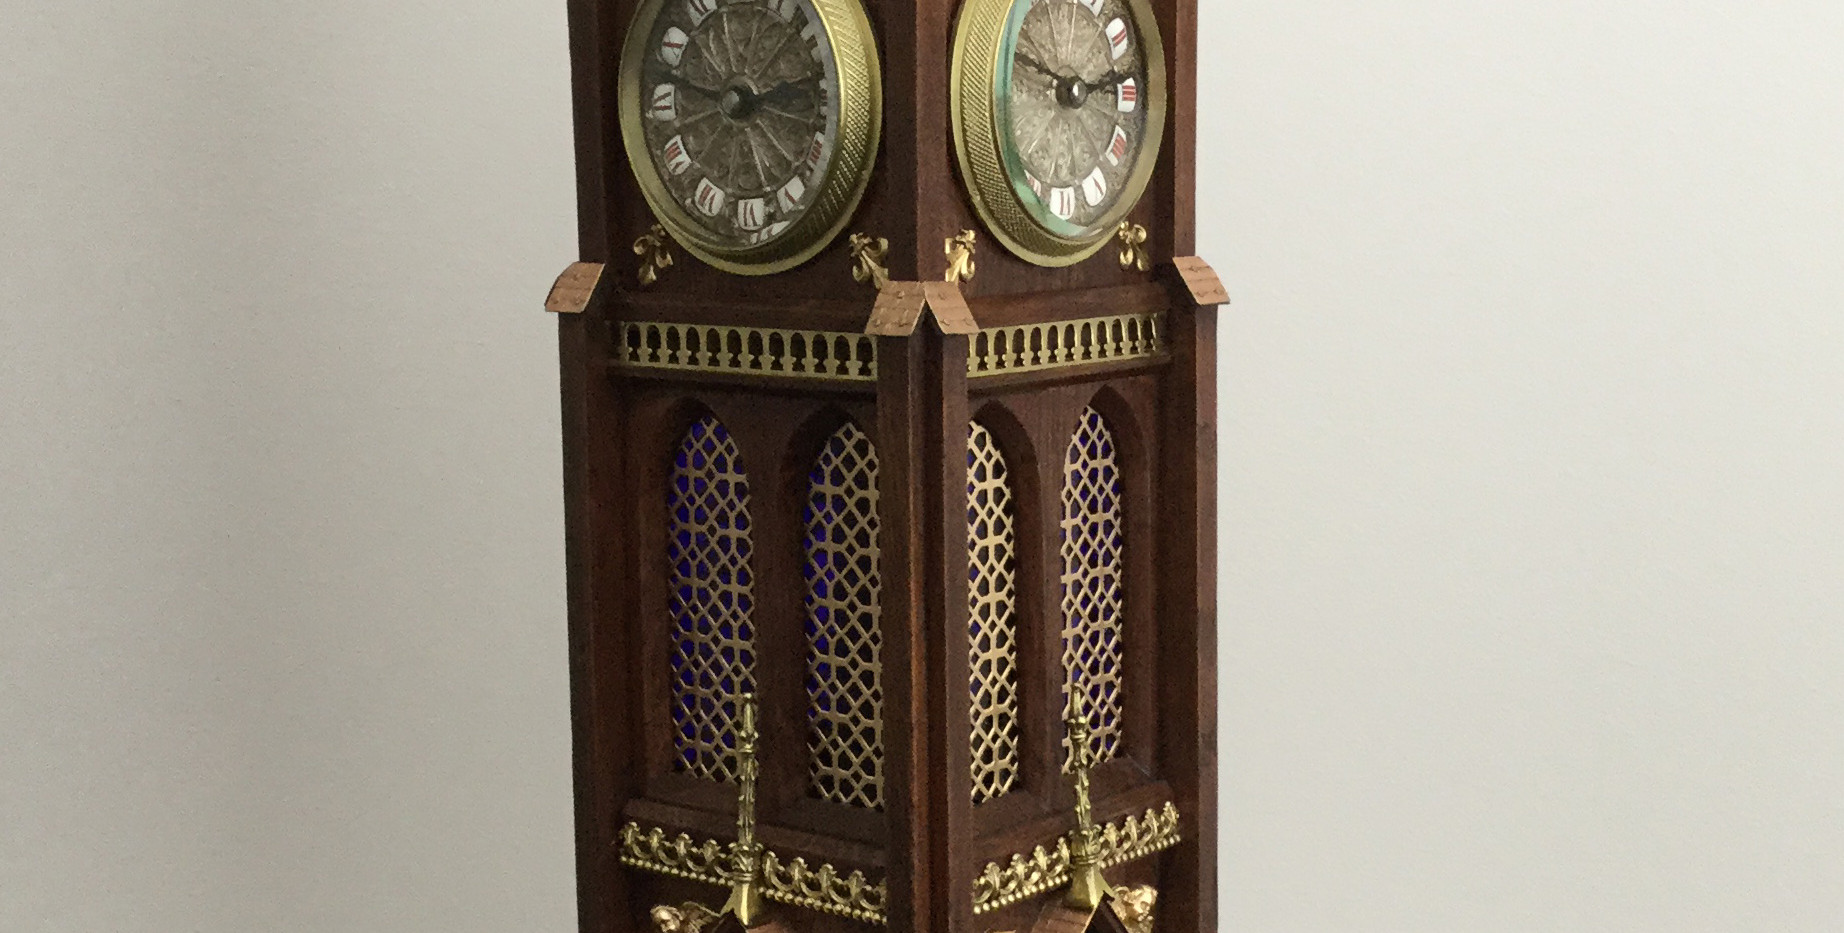 French Blumberg Tower Clock